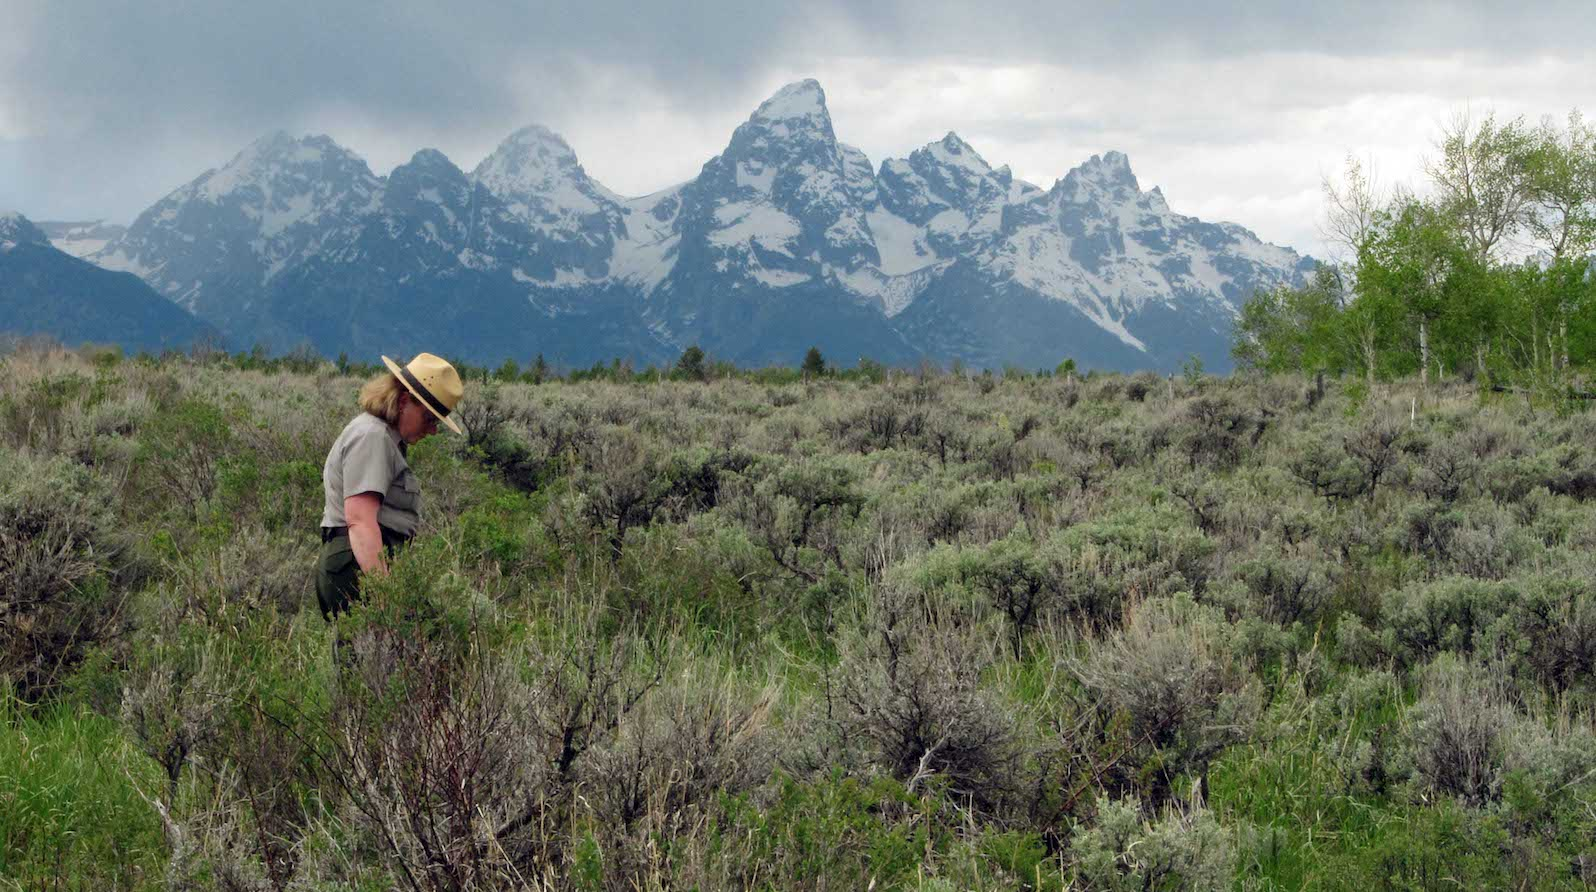 Grand Teton National Park spokeswoman Jackie Skaggs strolls across a square-mile section of state land in the park. Wyoming is threatening to auction off the land if the federal government doesn't agree to trade land, minerals or mineral royalties for the property. (AP Photo/Mead Gruver)